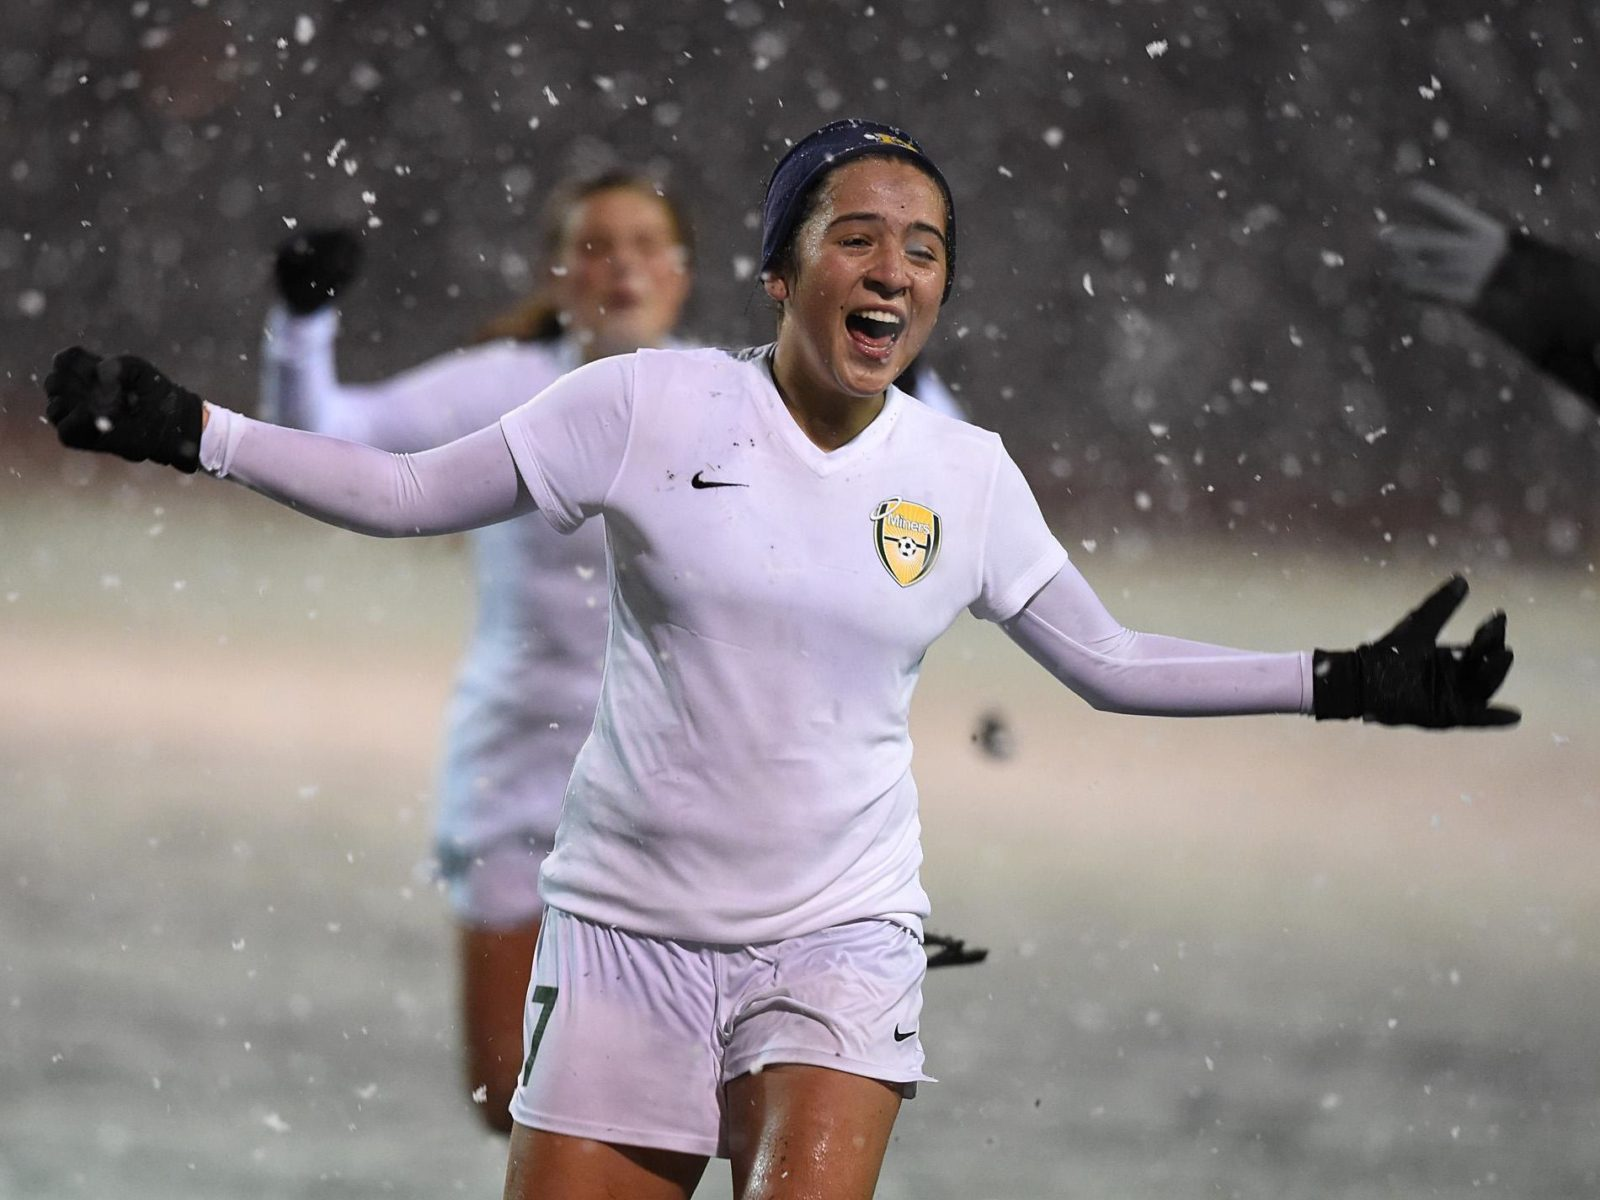 Holiday Cup Soccer Free Agent